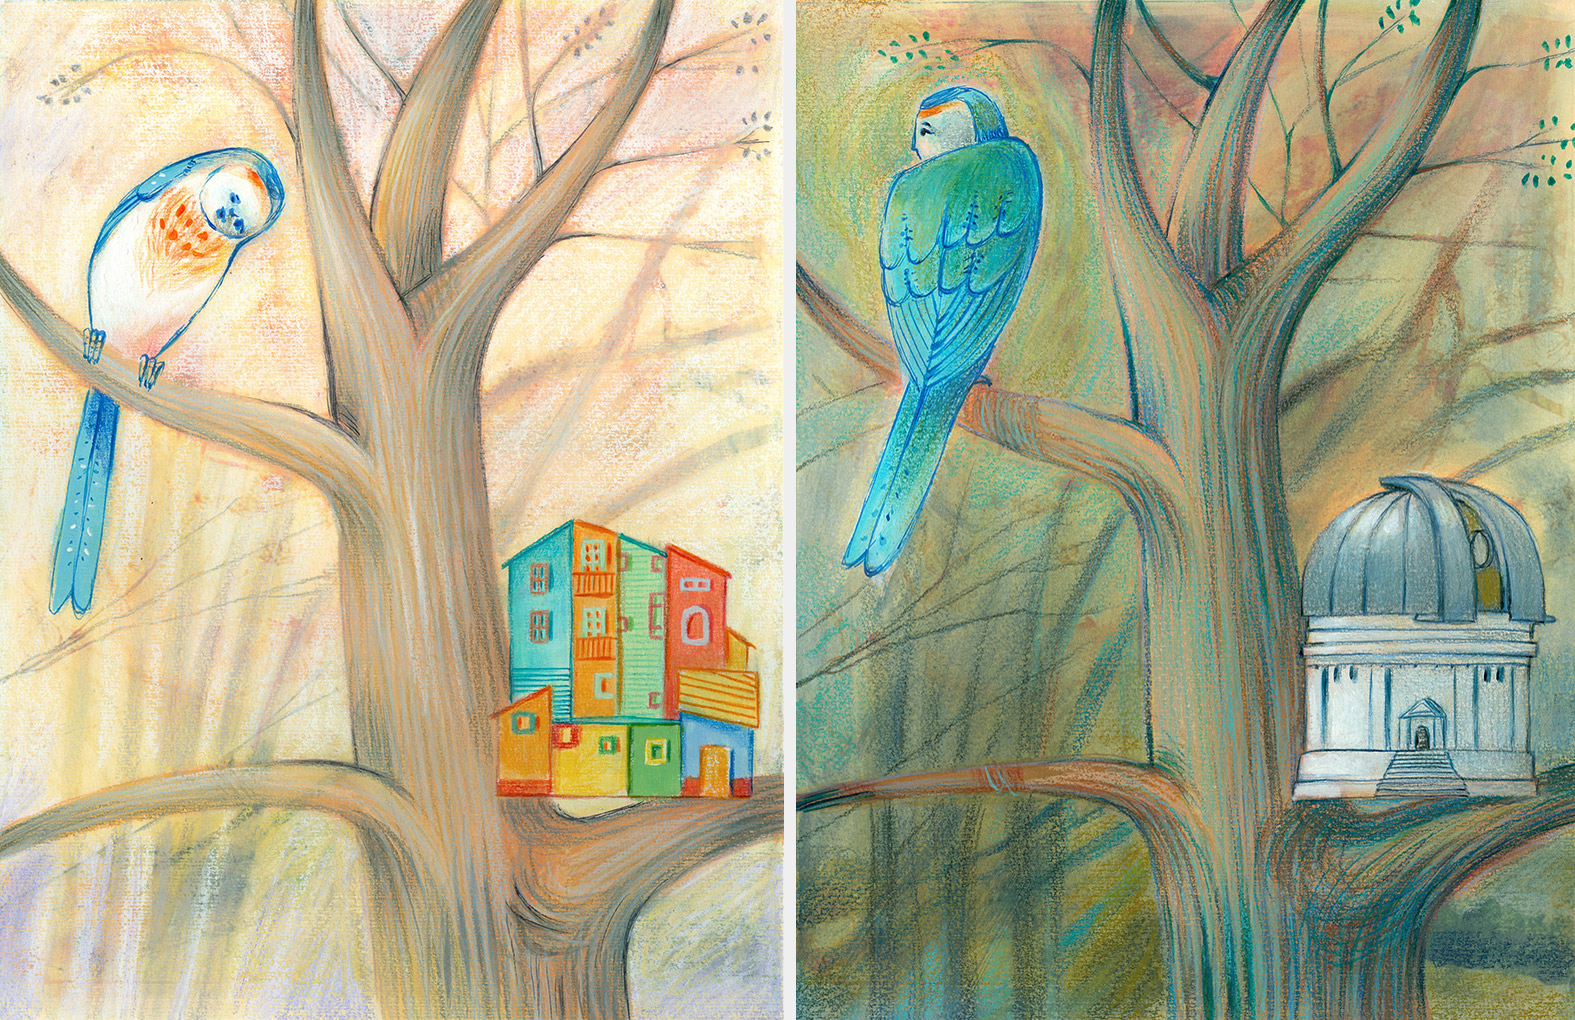 Two illustrations of a bird which has built the wrong houses, one is an observatory and the other is a colored house like the ones at El Caminito. He has to learn to build the nest